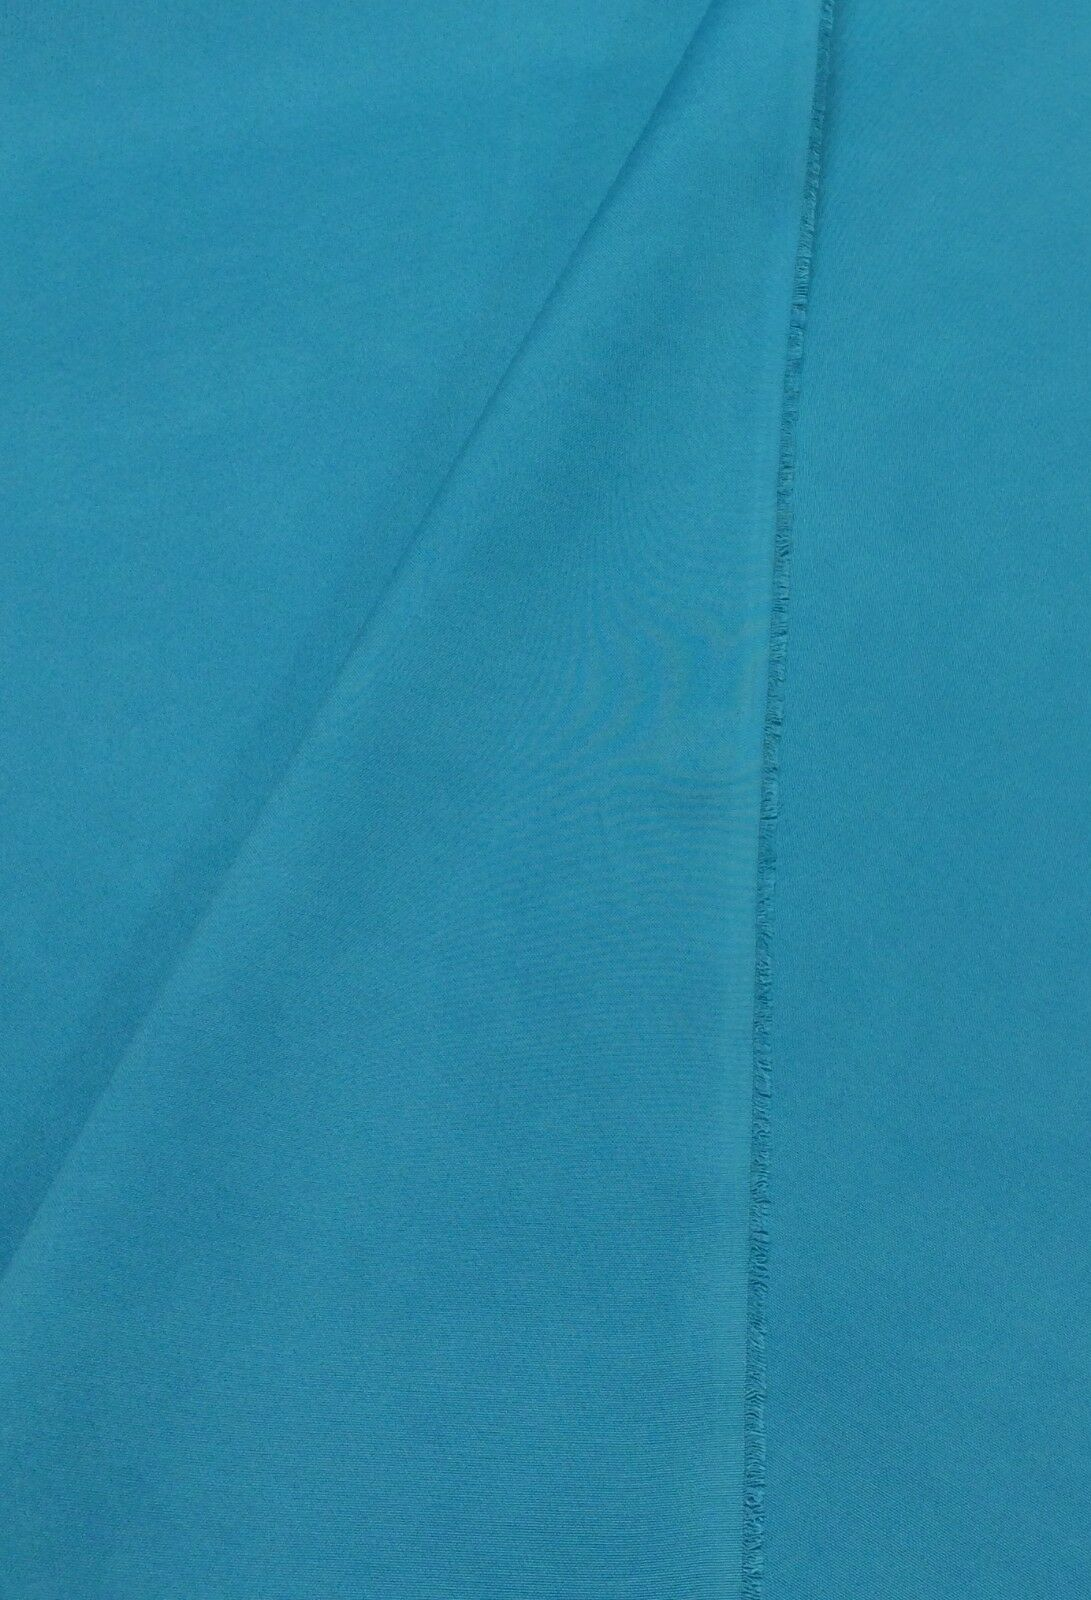 RICHLOOM VERANDA TURQUOISE TROPICAL BLUE OUTDOOR FURNITURE FABRIC BY THE YARD